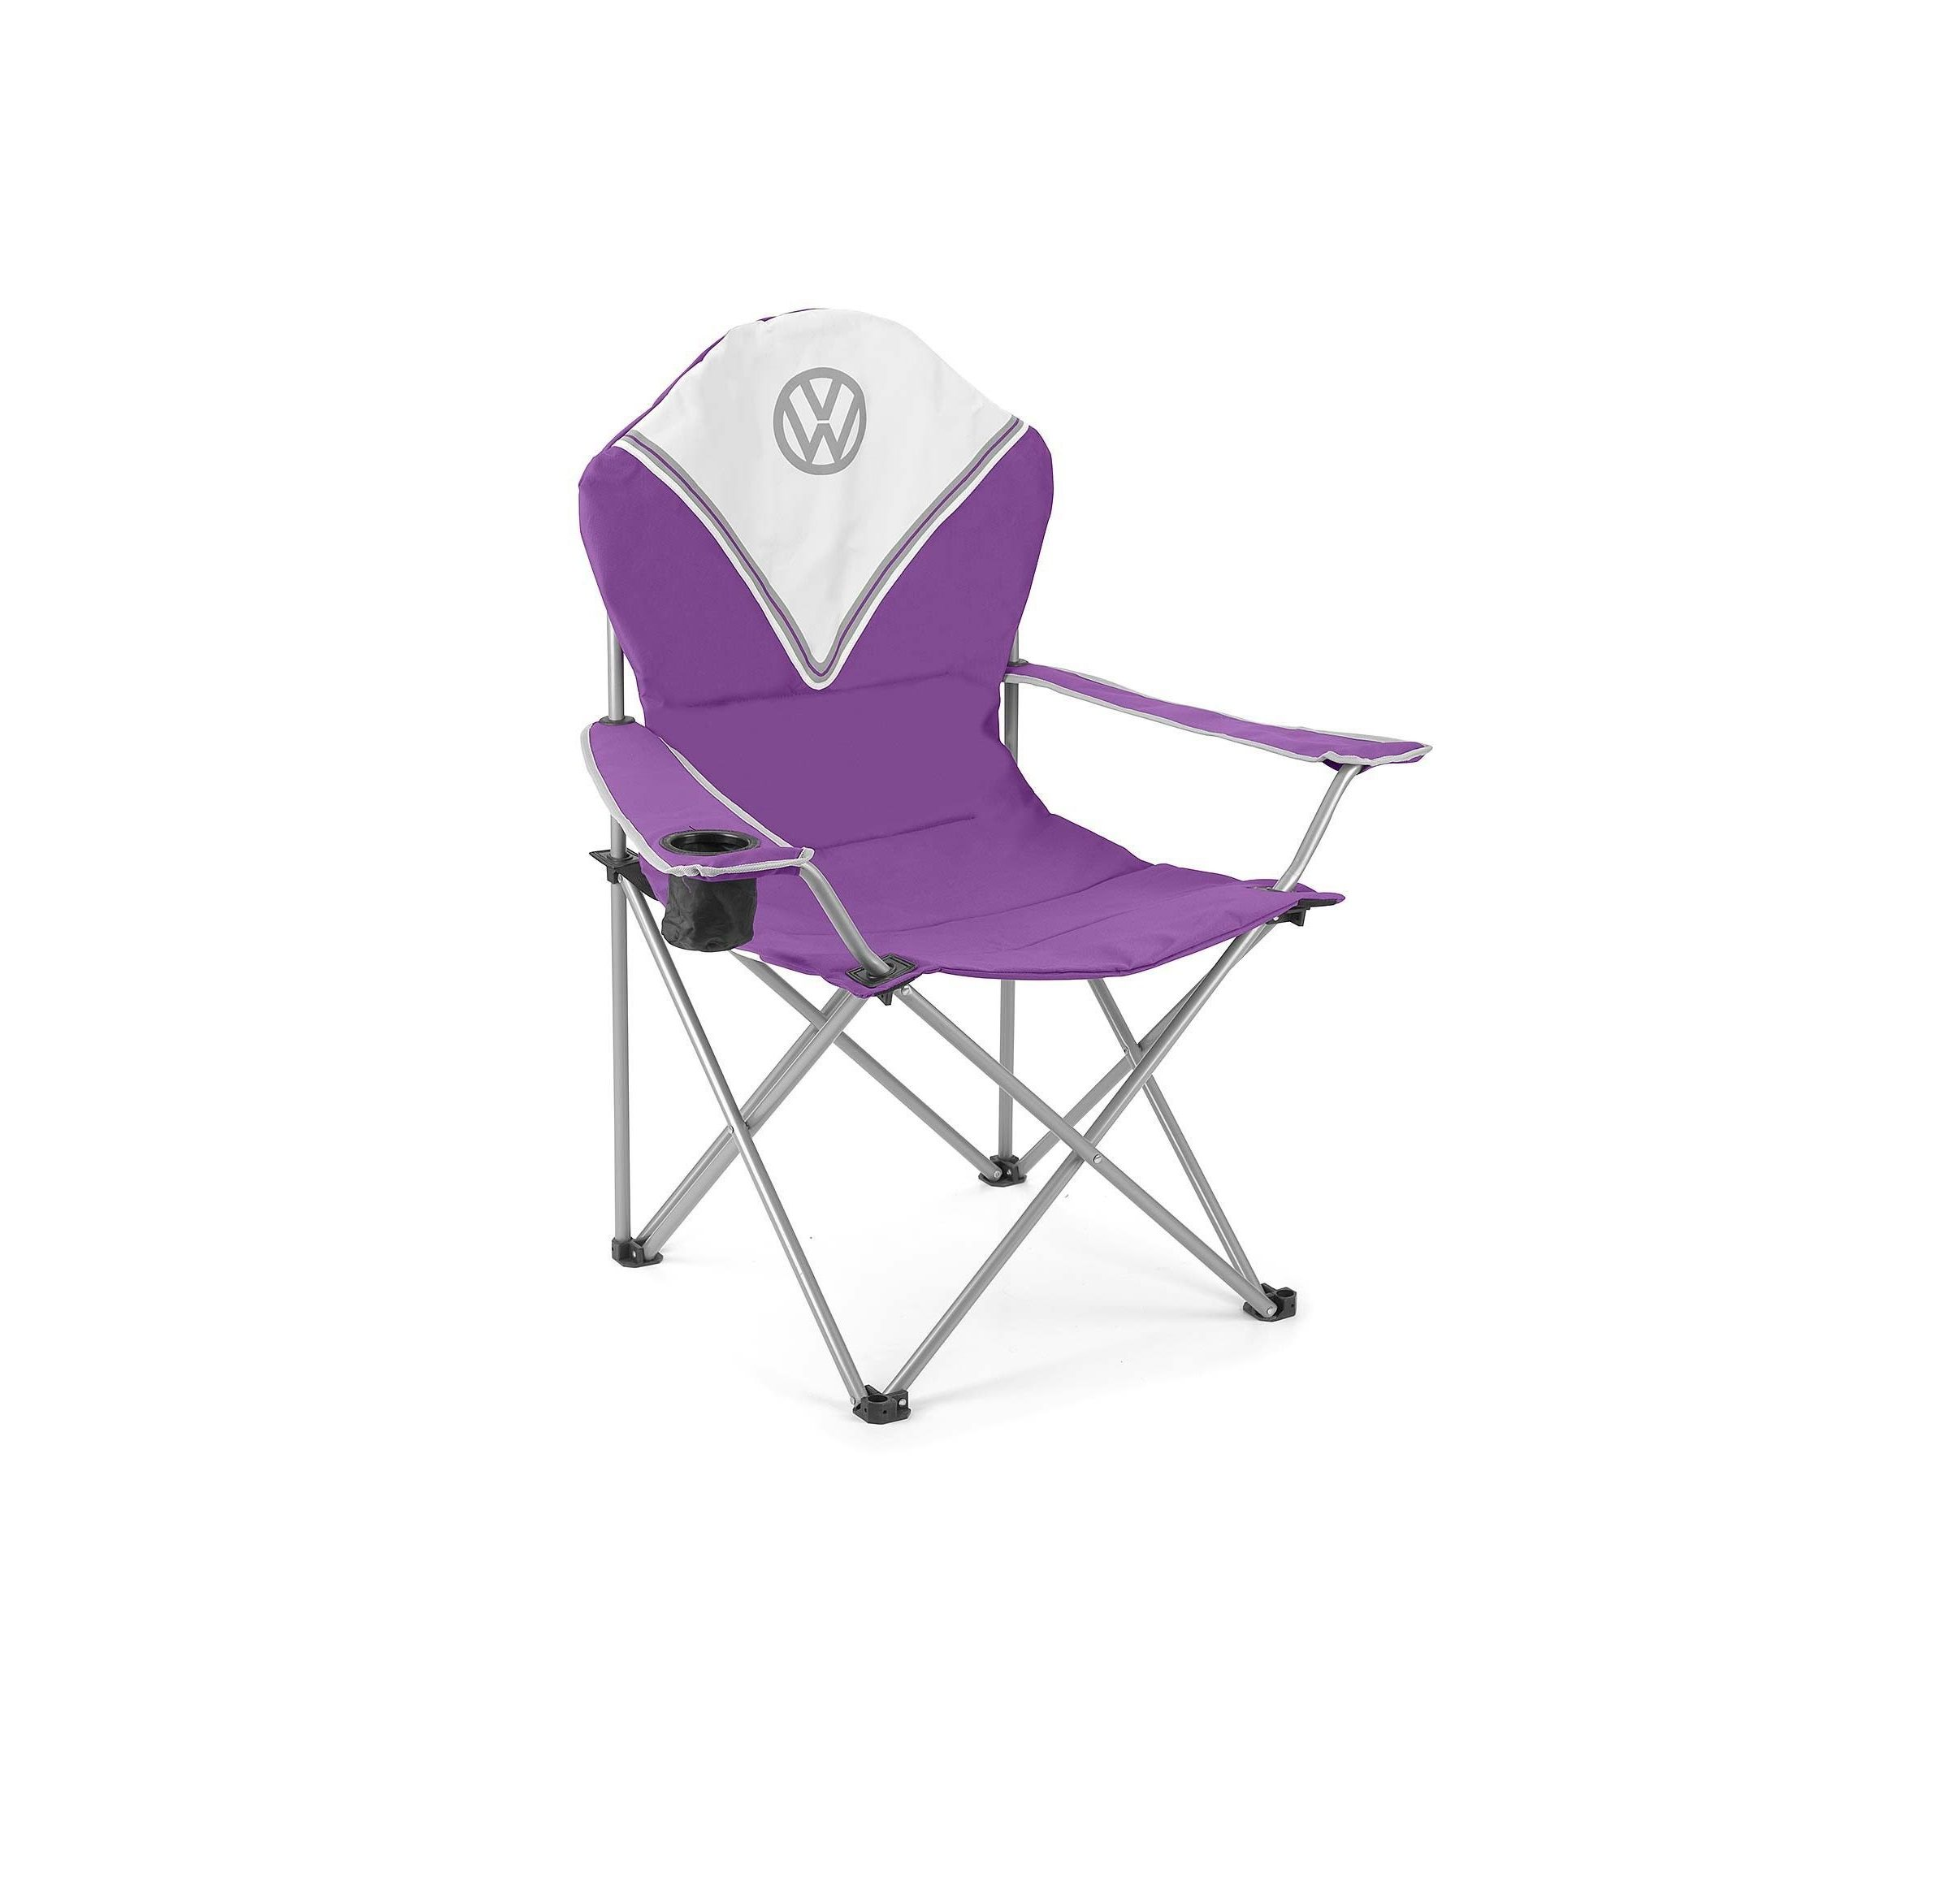 Vw Deluxe Padded Chair Purple